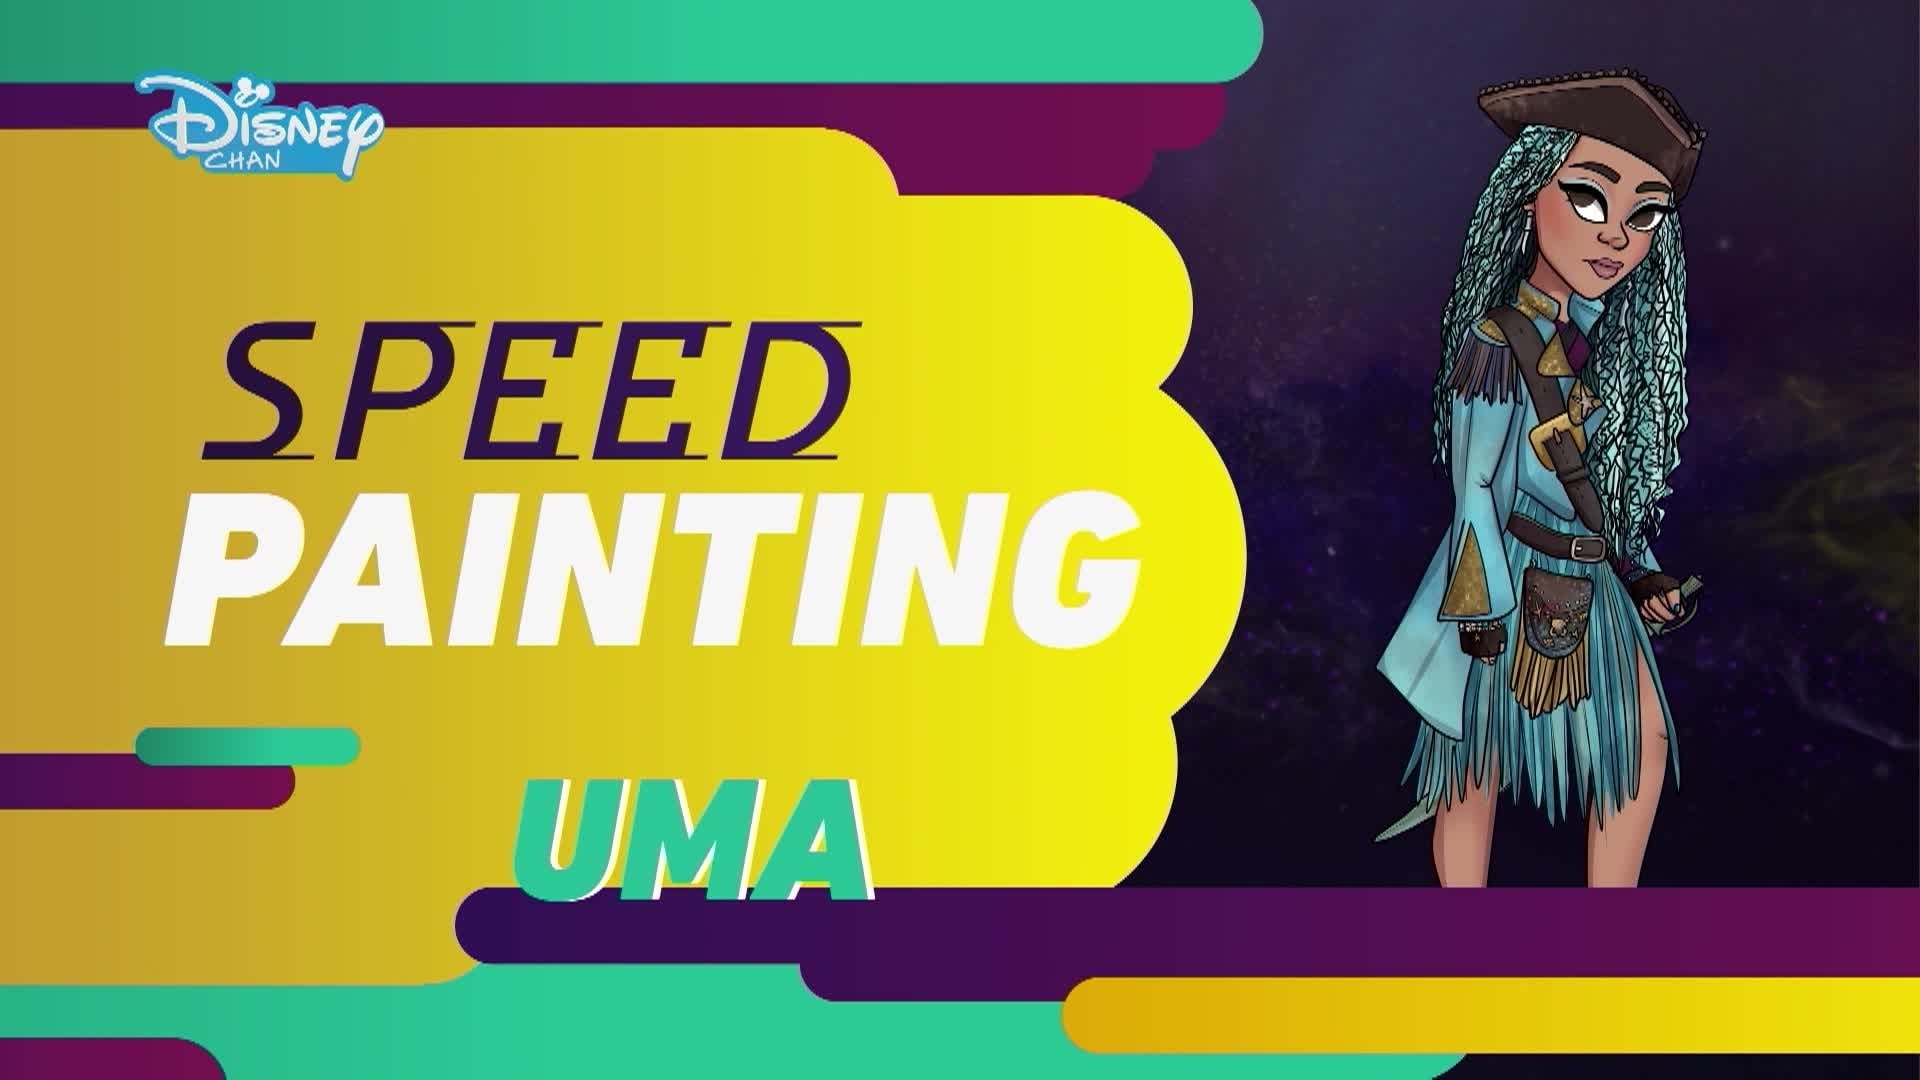 Os Descendentes 2: Speed Painting - Uma